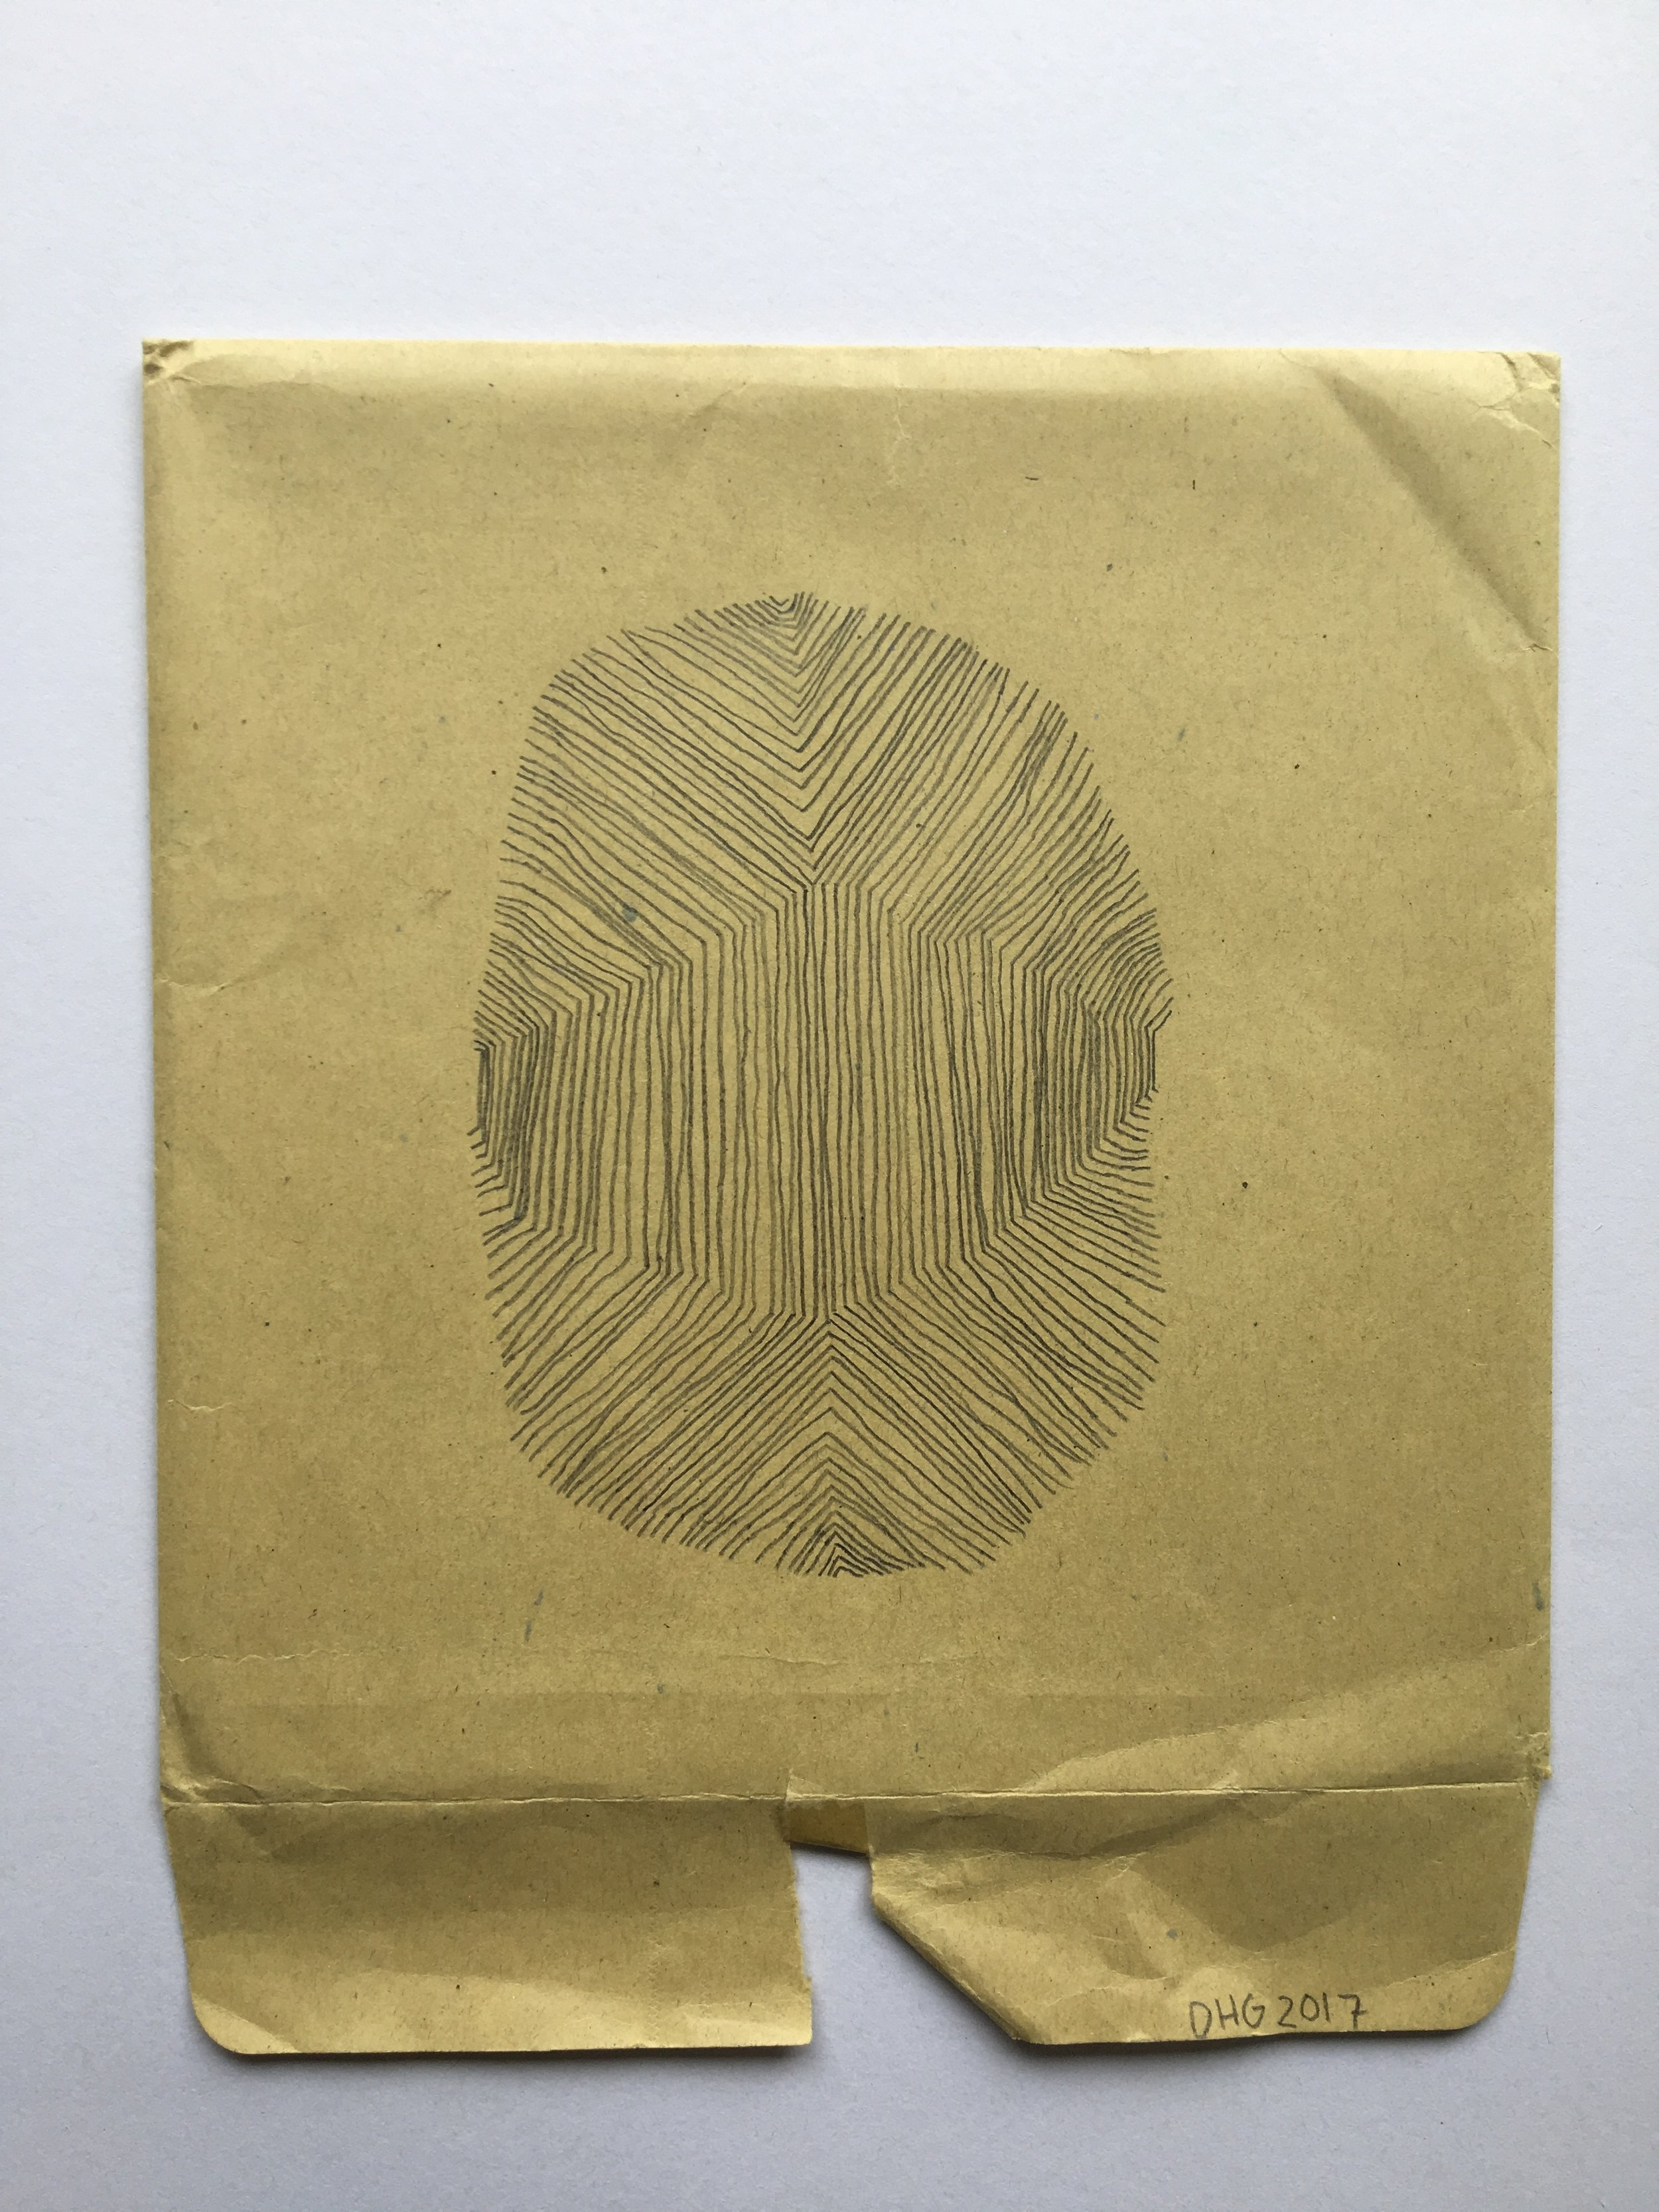 "thumbprint, 2017, 8"" x 6"" (11 ½ x 10 in. framed) pencil on envelope $600"